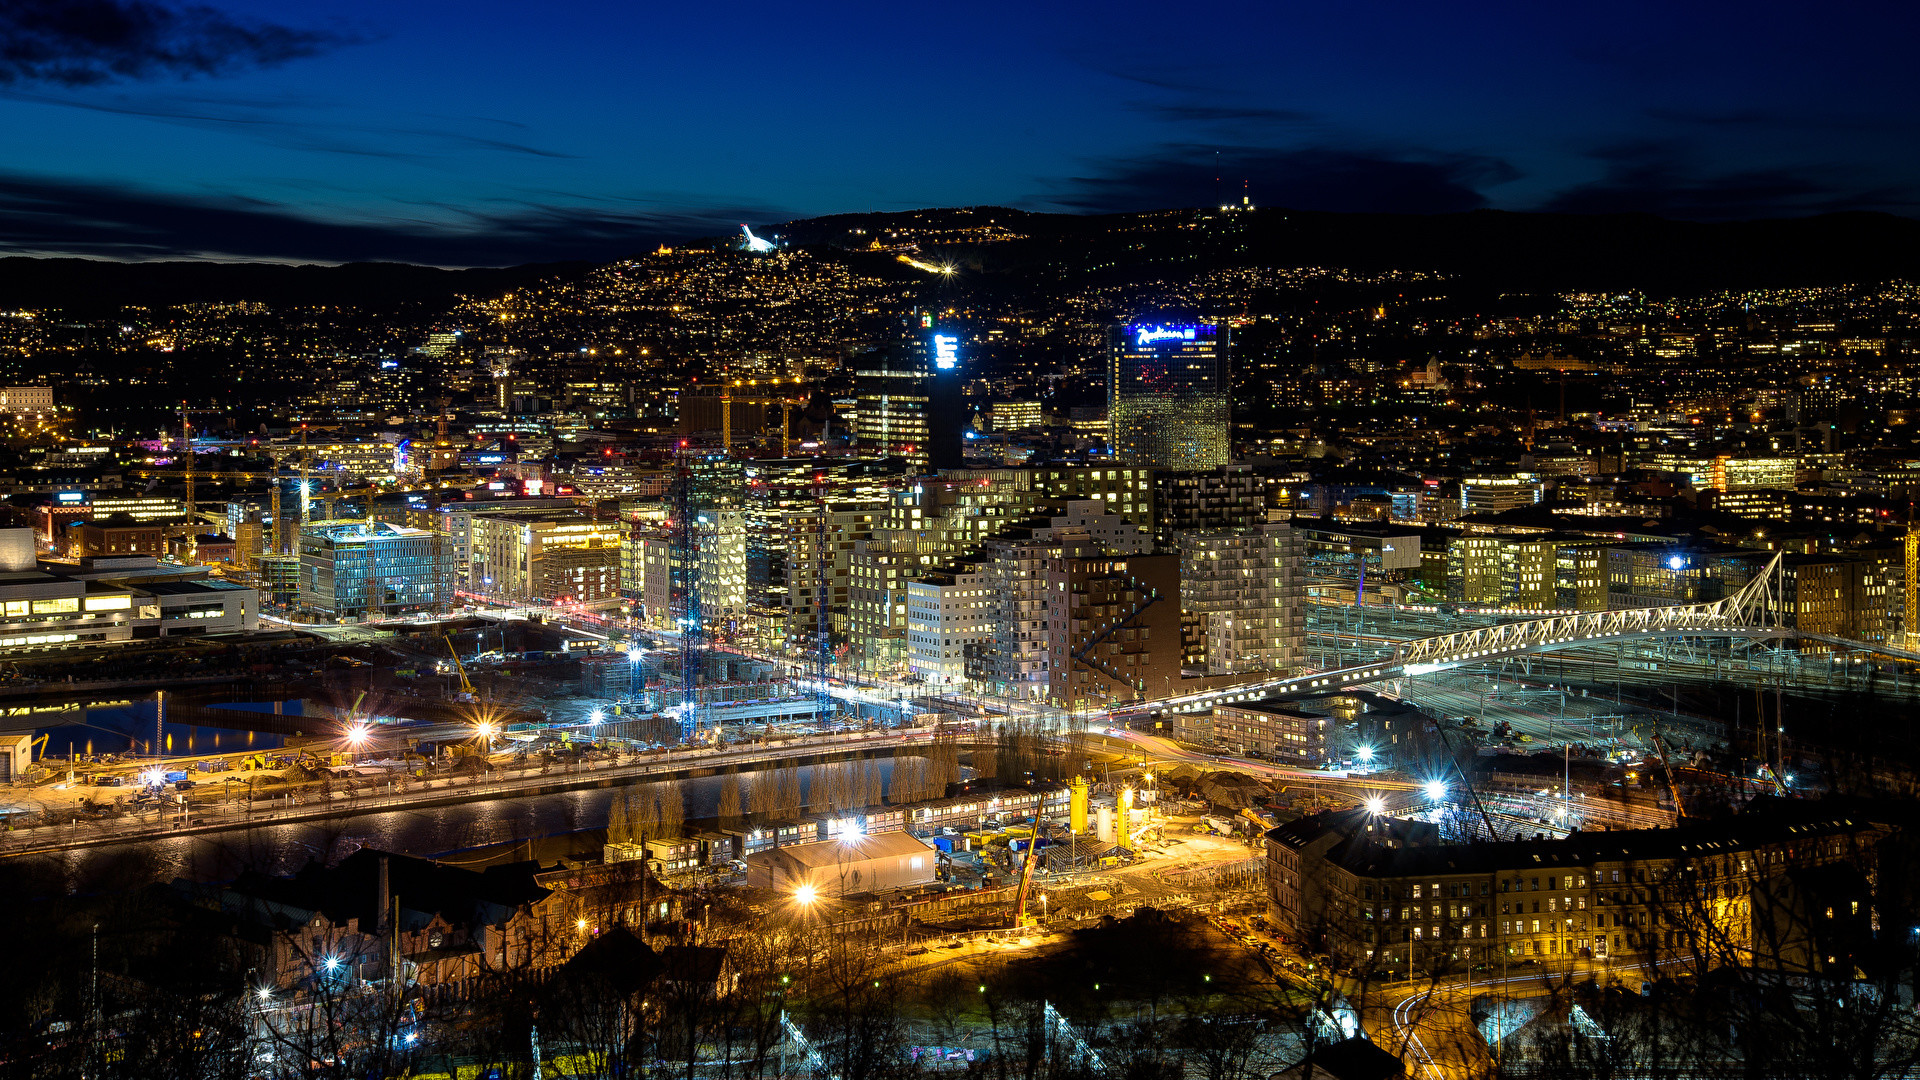 Wallpapers Norway Megalopolis Oslo night time Cities Building  Megapolis Night Houses